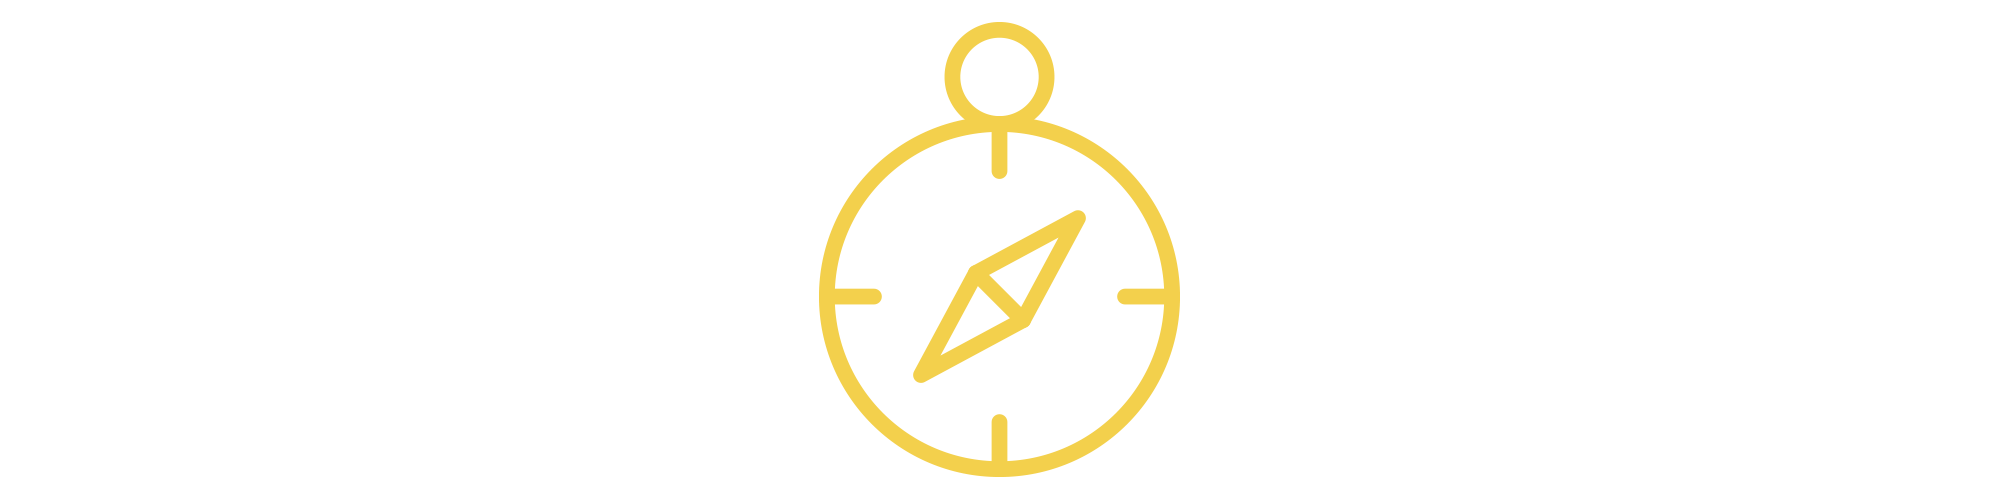 compass-icon.png